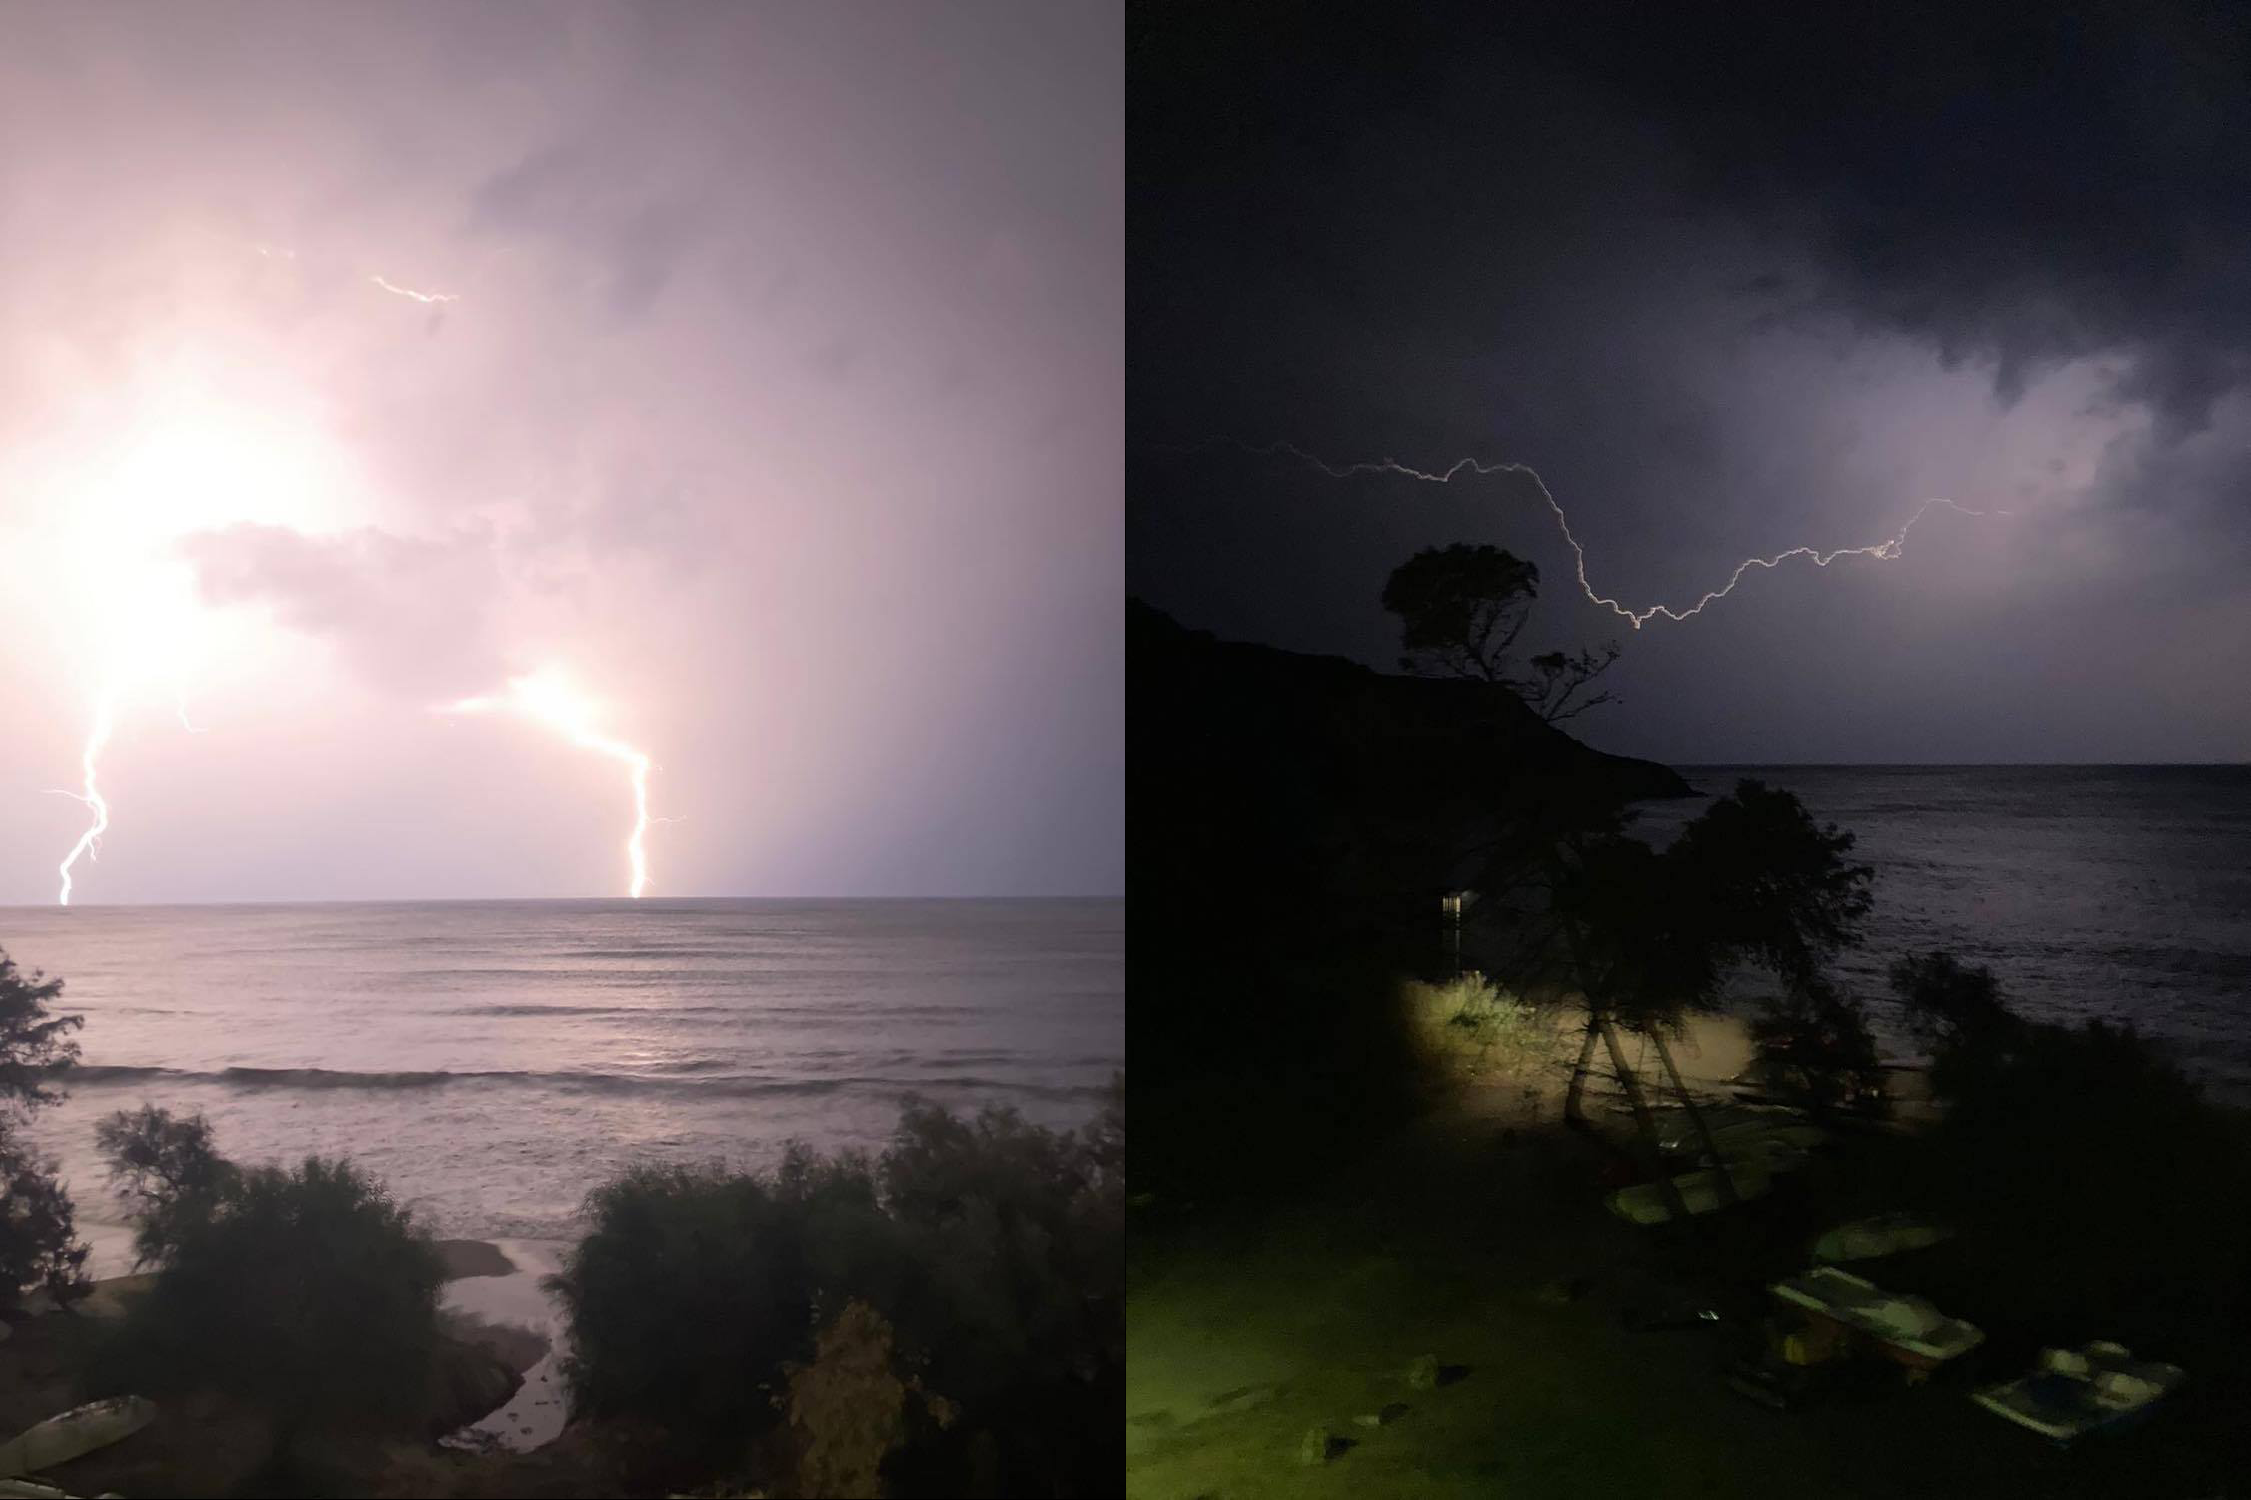 Lightning strikes off the Calabrian coast in the early hours of 17 September. Credit: Caterina Mazzuca